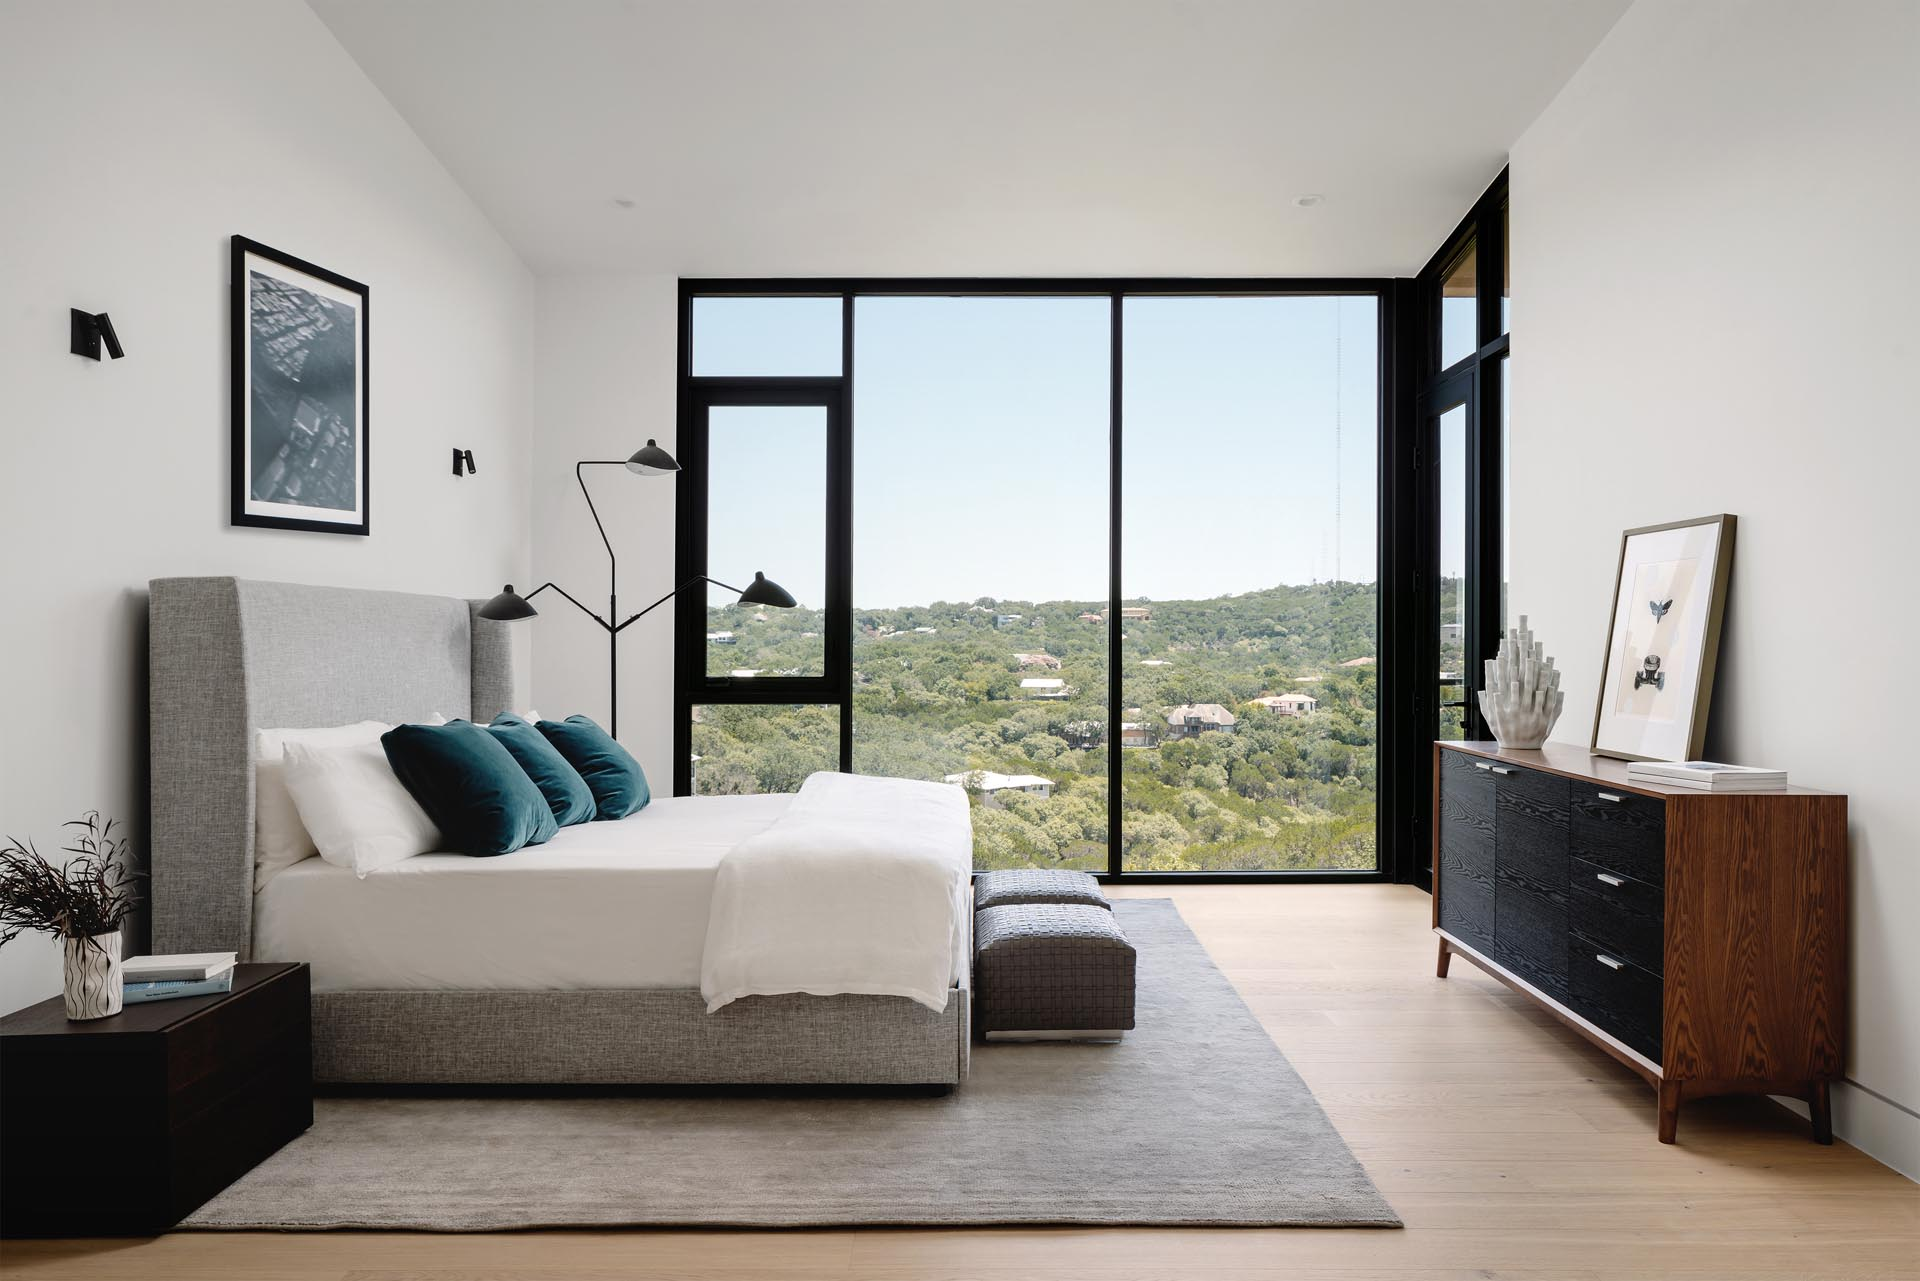 A modern bedroom with floor-to-ceiling windows that allow the tree view to be enjoyed from the bed.